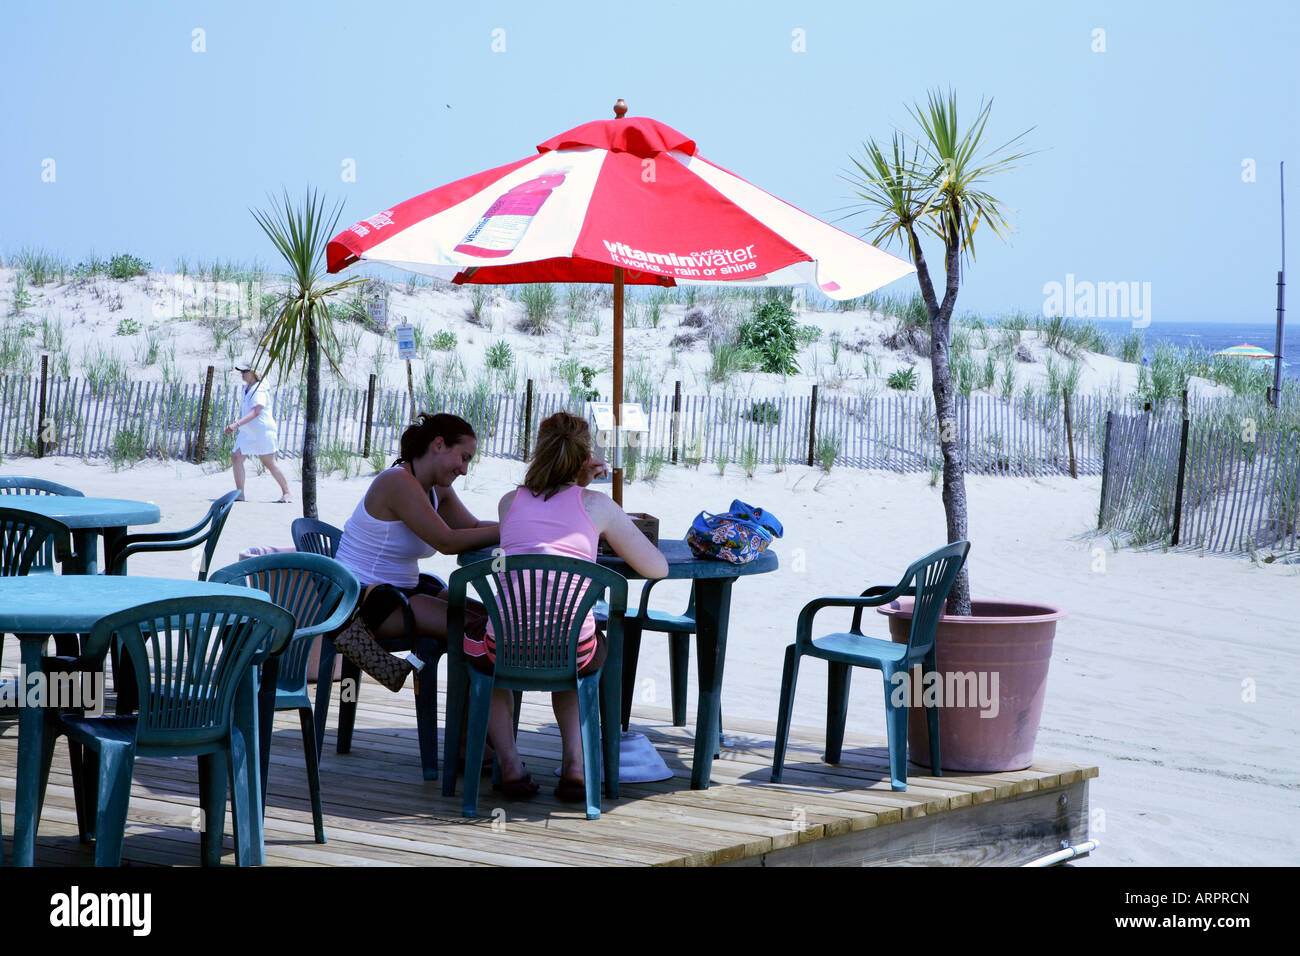 Two Young Women Sitting At Plastic Patio Table Under Red And White